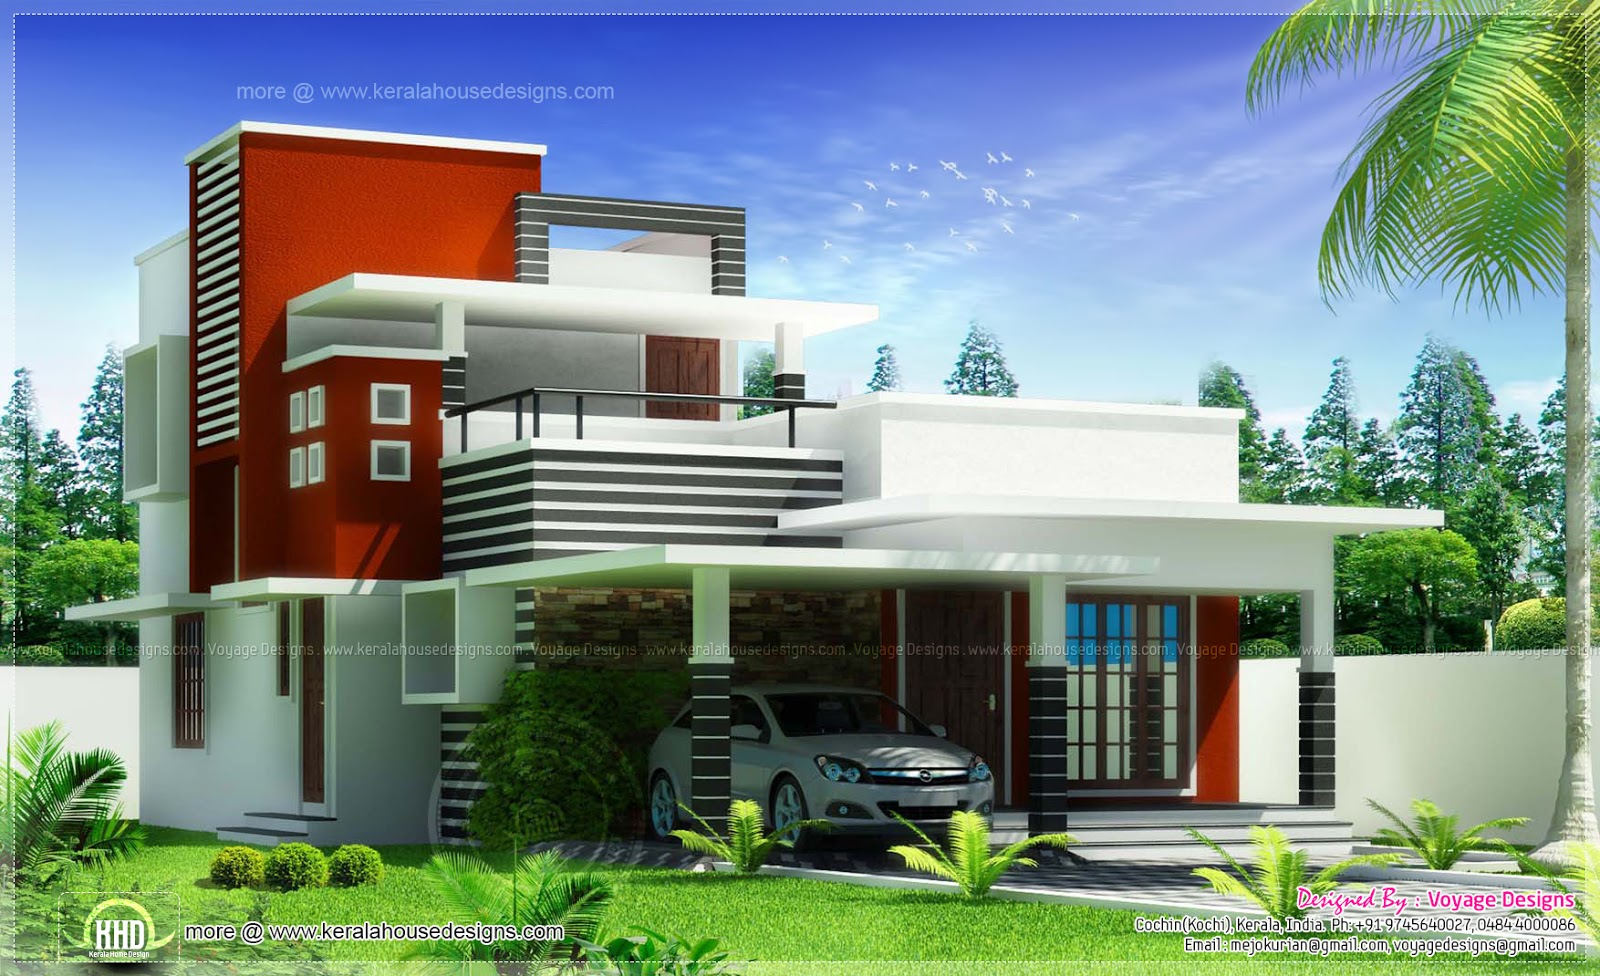 3 bed room contemporary style house home kerala plans for Modern house details